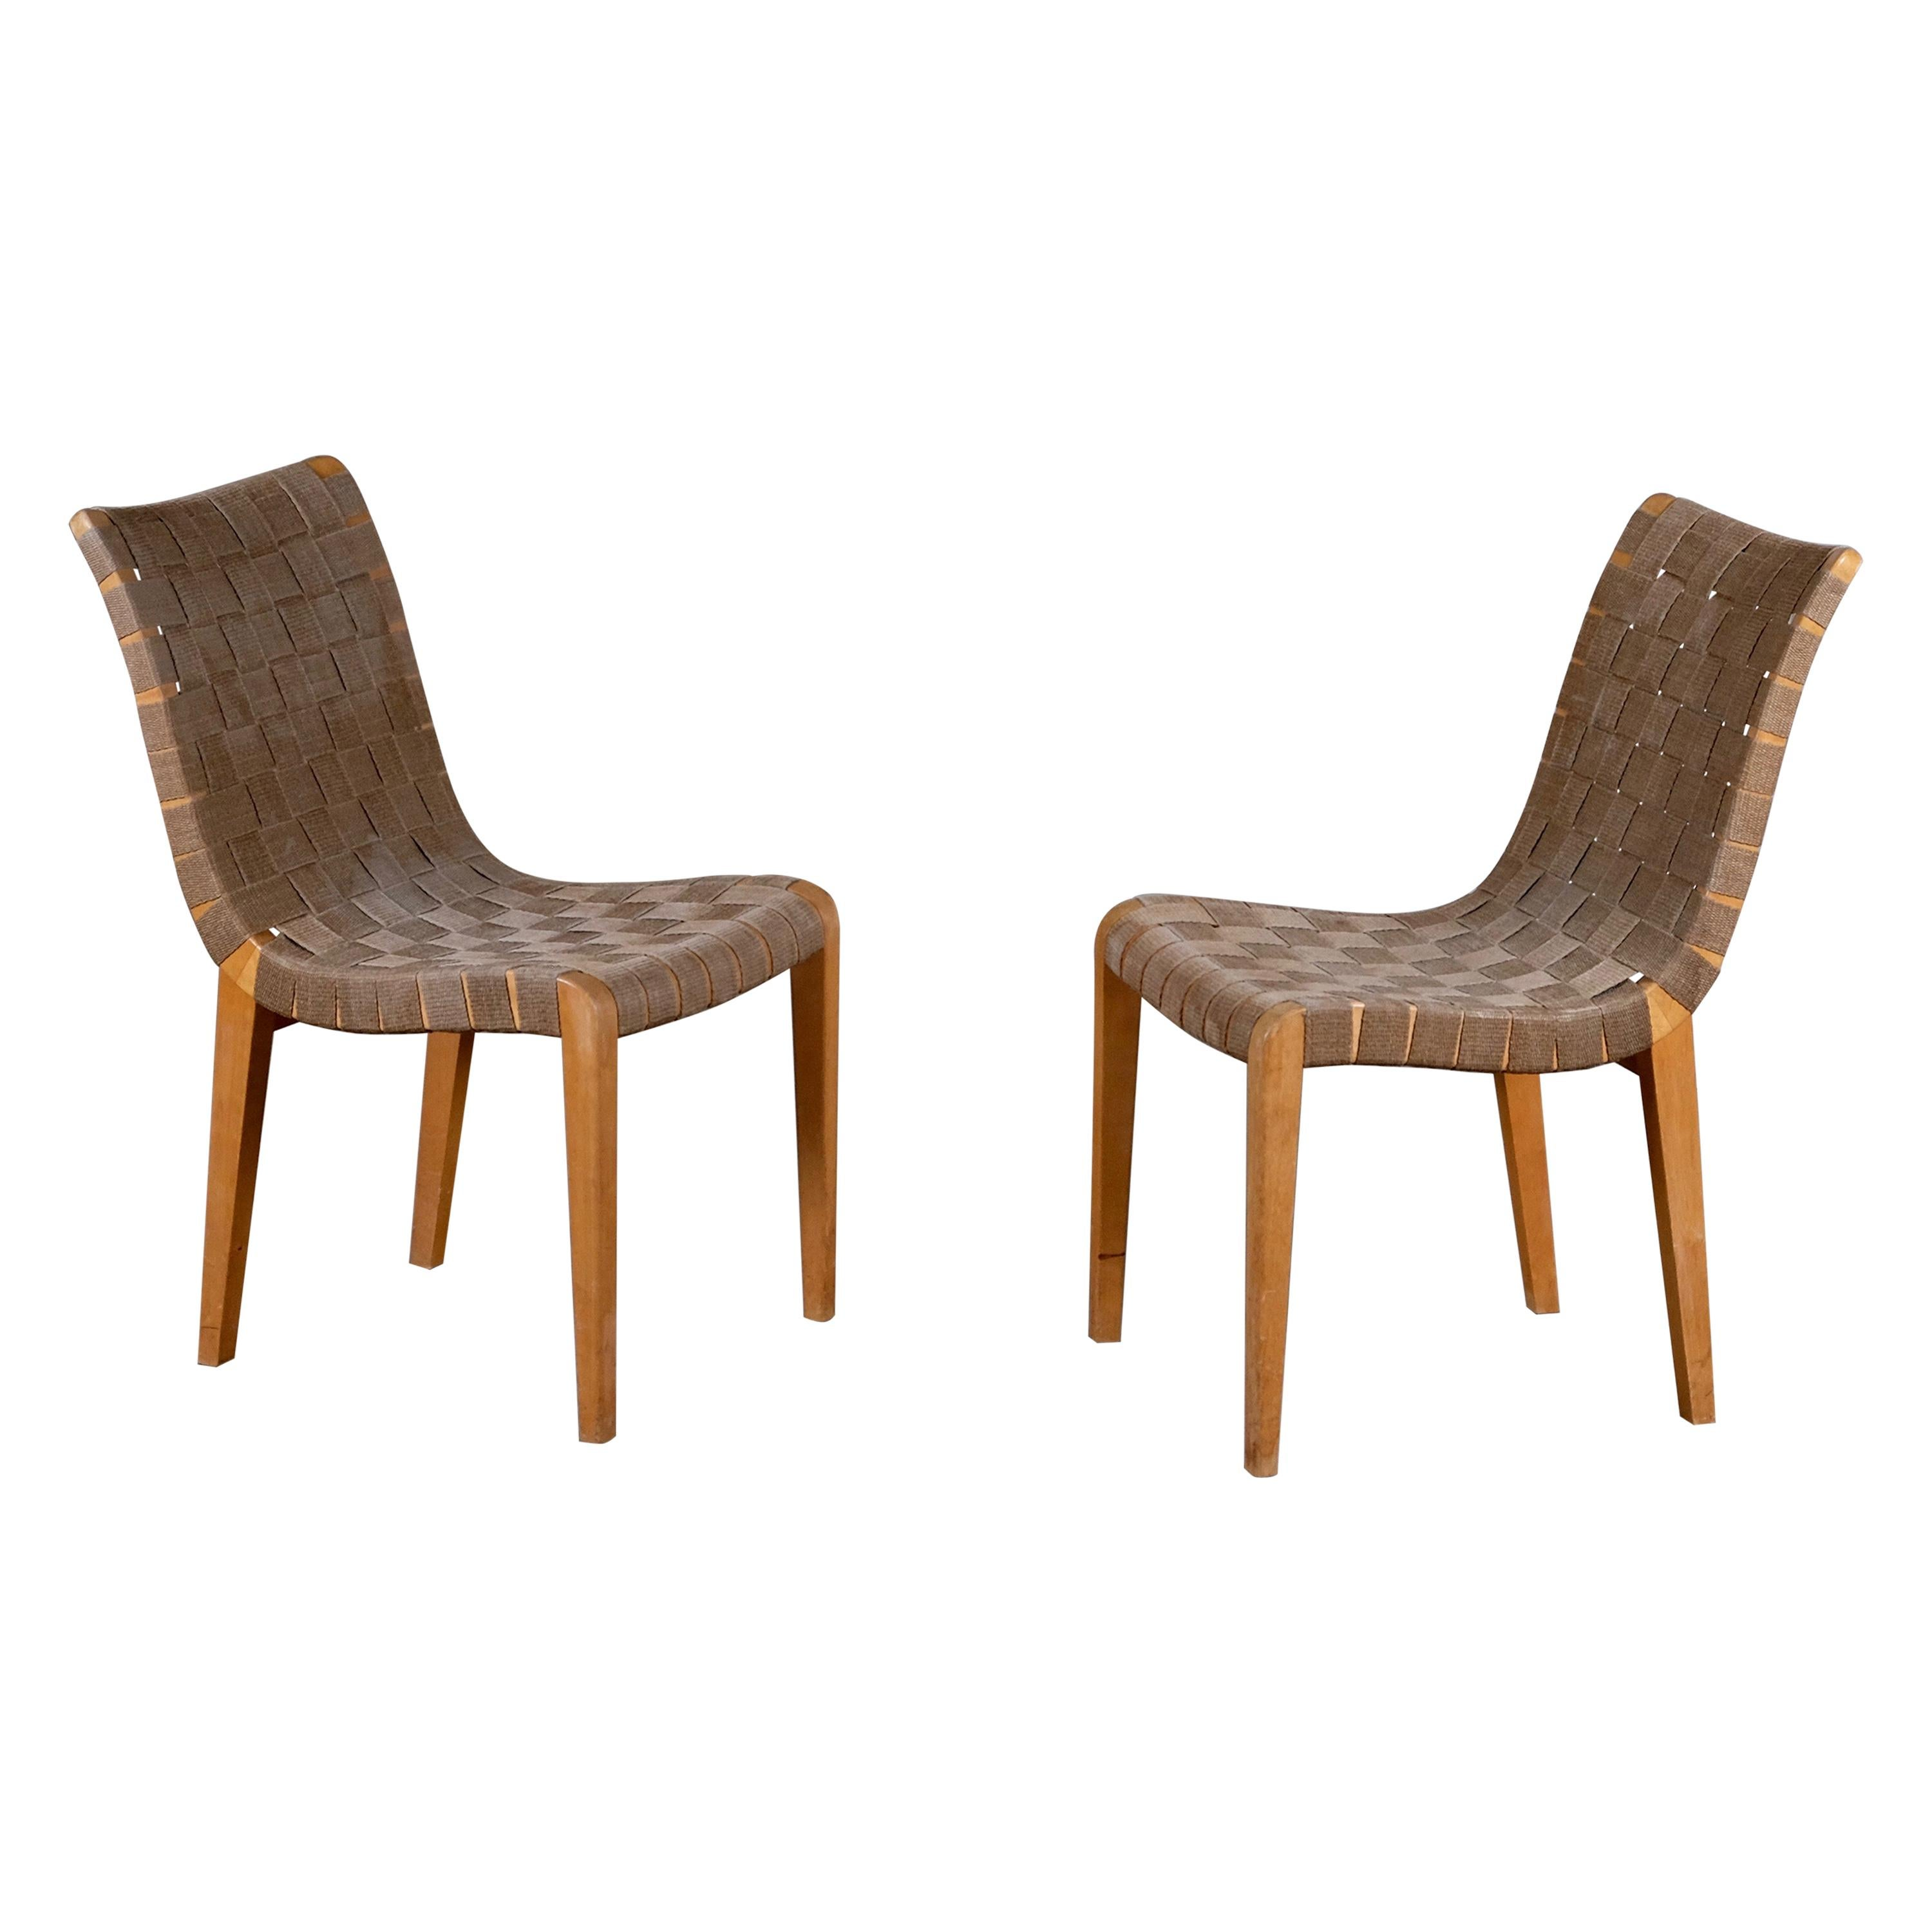 Pair of Axel Larsson Chairs by Bodafors, 1940s